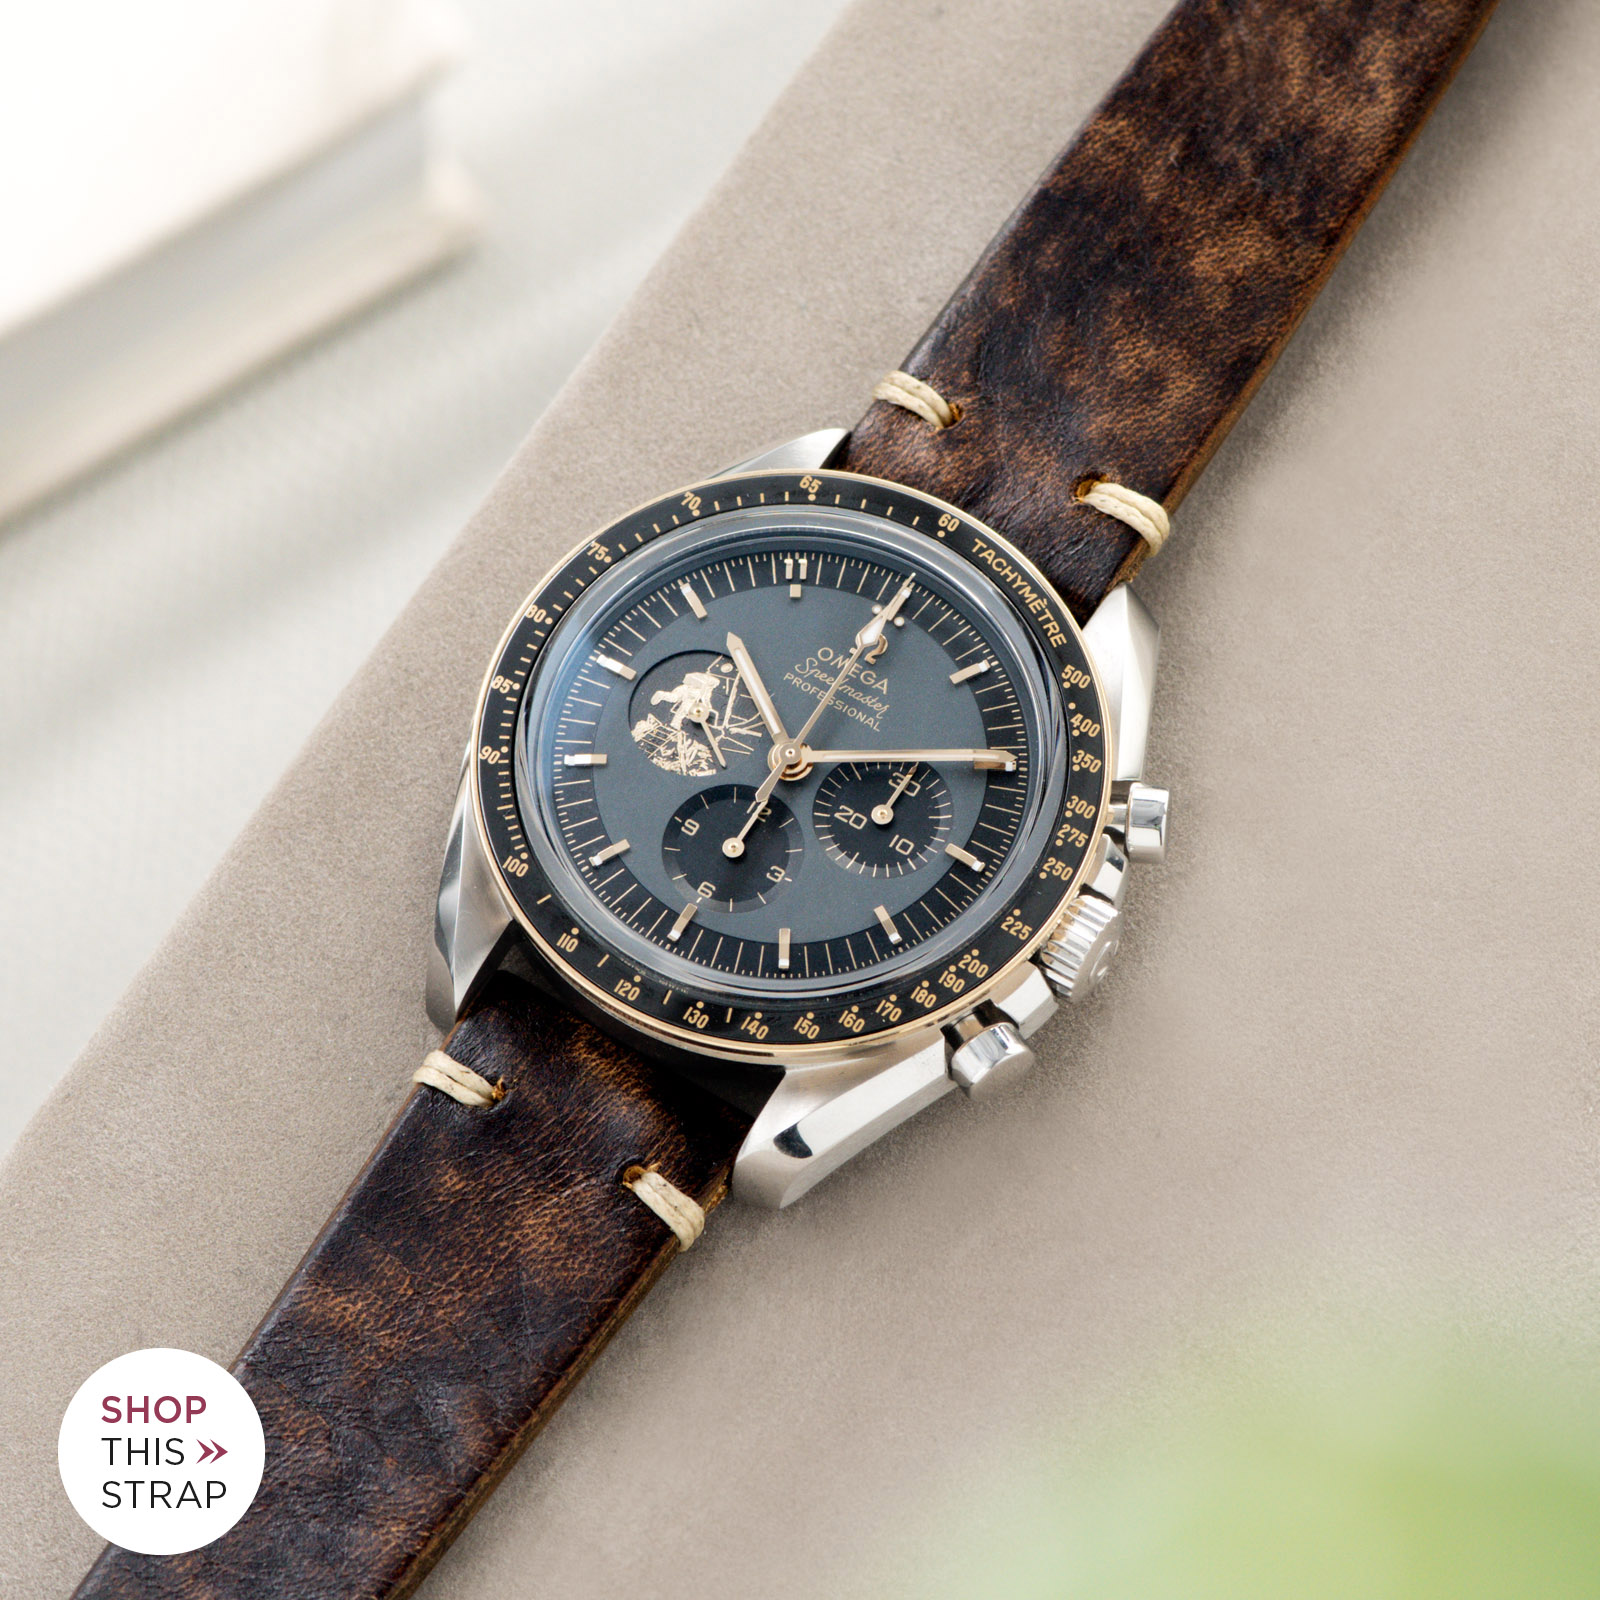 Bulang and Sons_Strapguide_Woodie Brown Leather Watch Strap